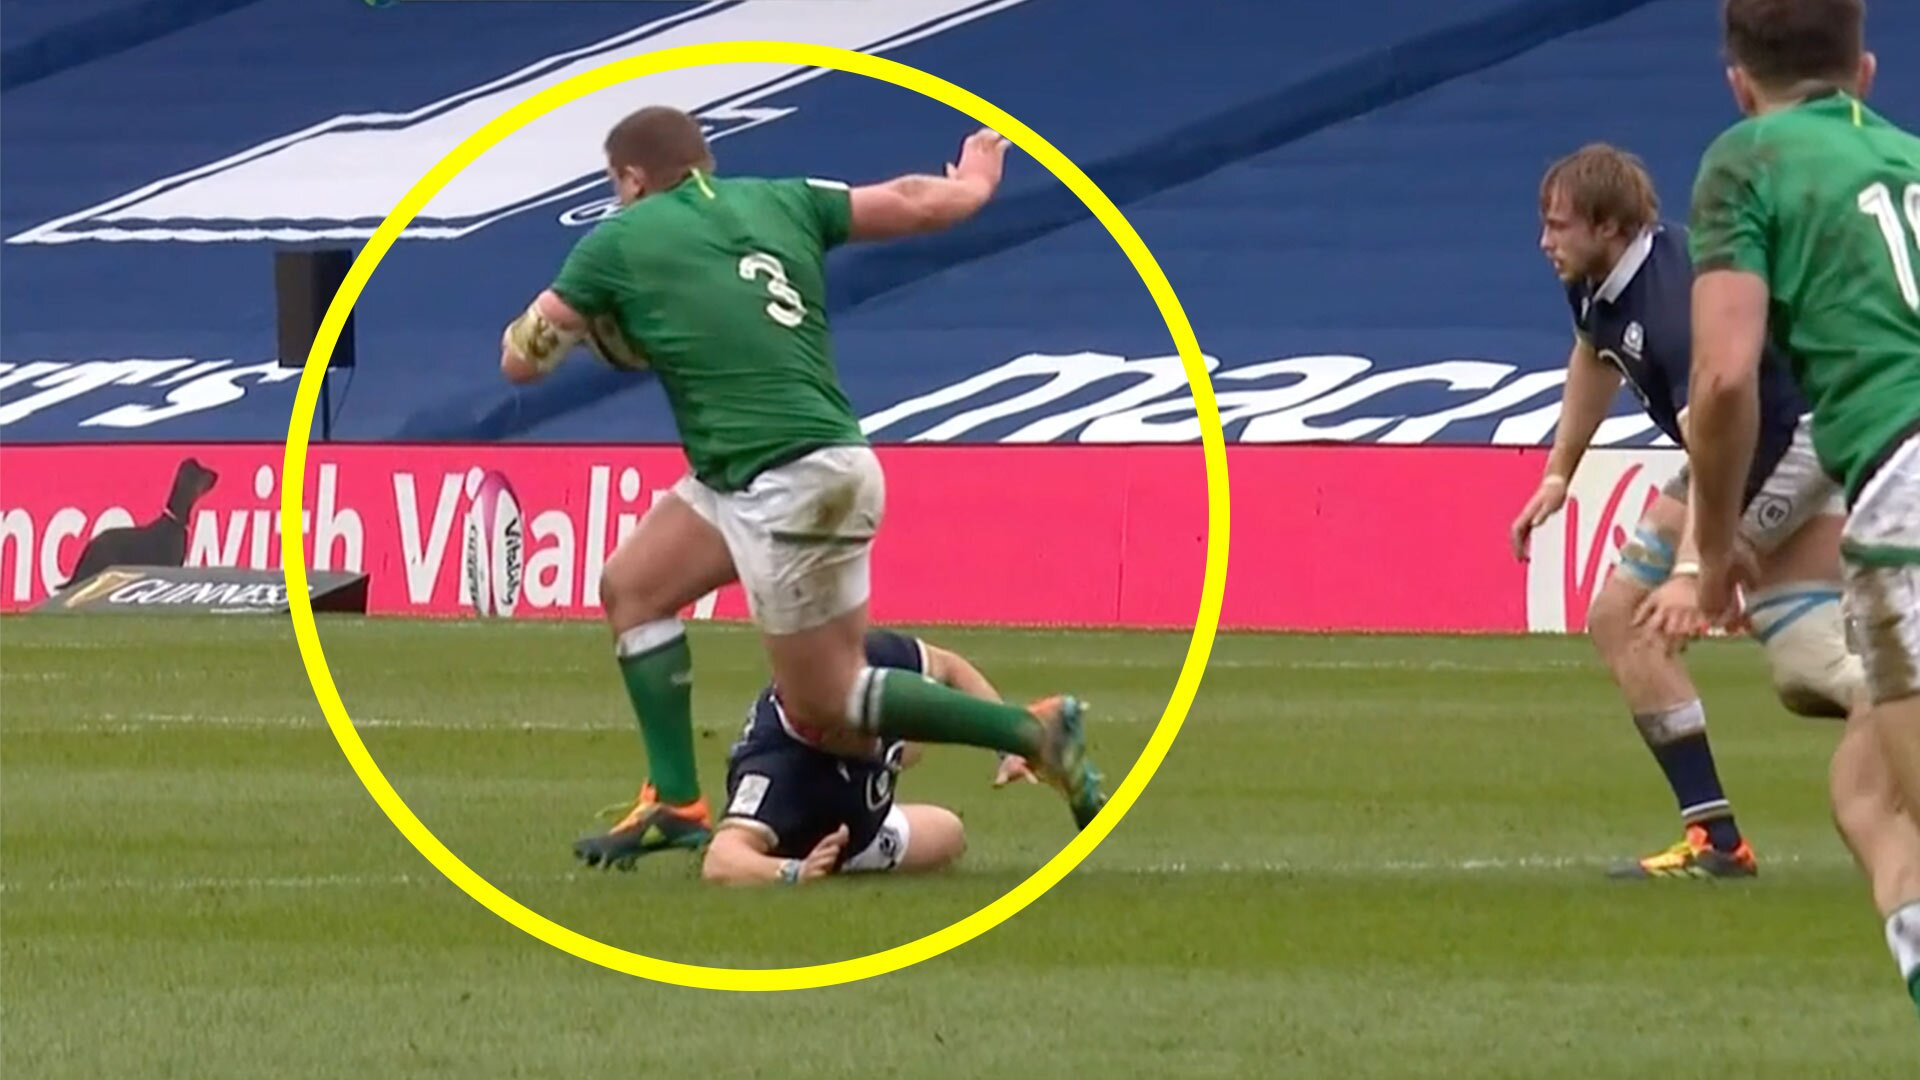 Footage of Tadhg Furlong sidestepping has broken large swathes of the internet